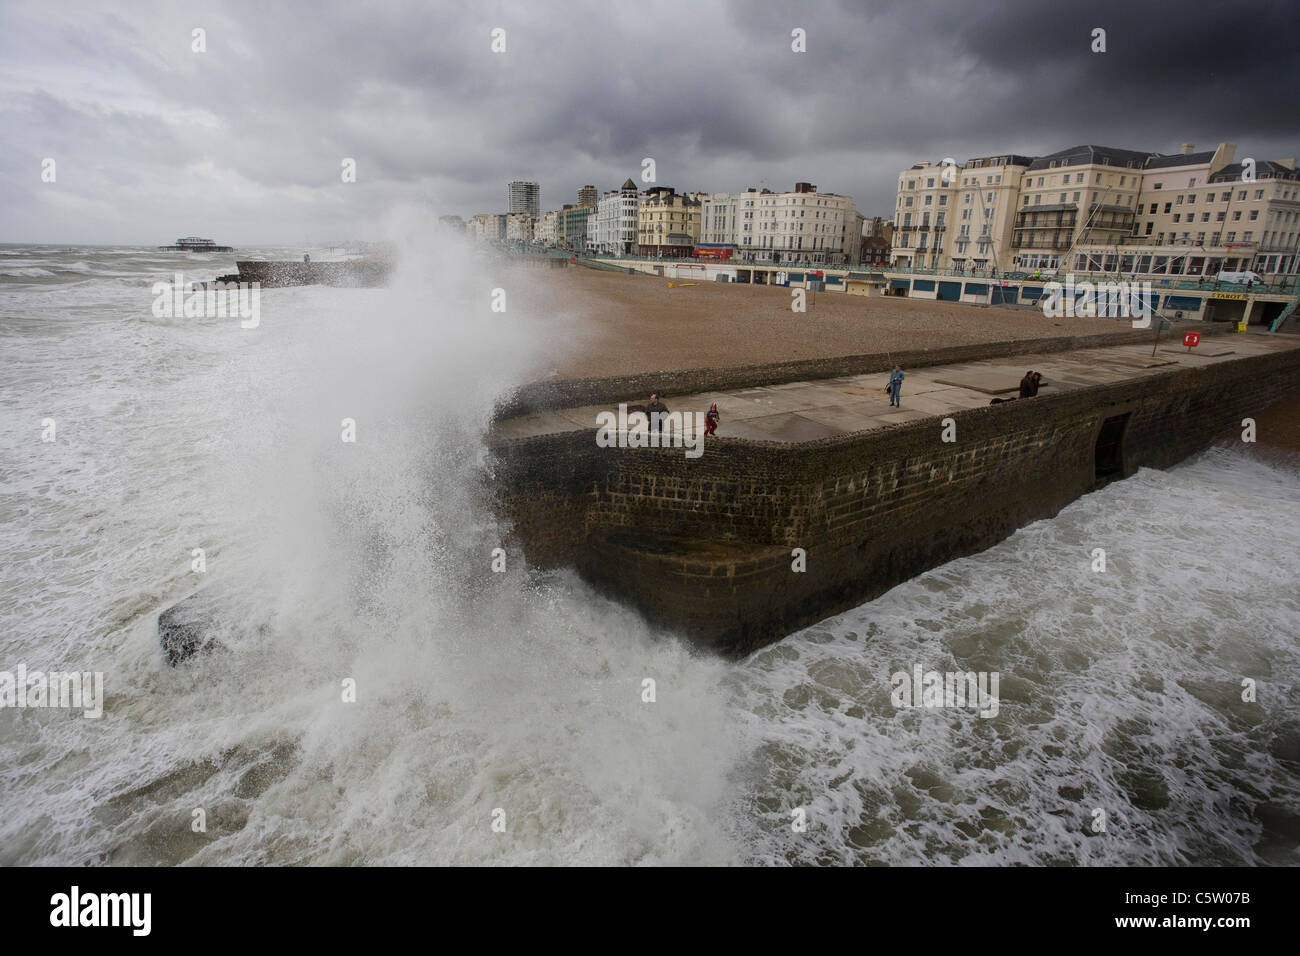 Waves crash onto a groin on Brighton beach. Picture by James Boardman - Stock Image